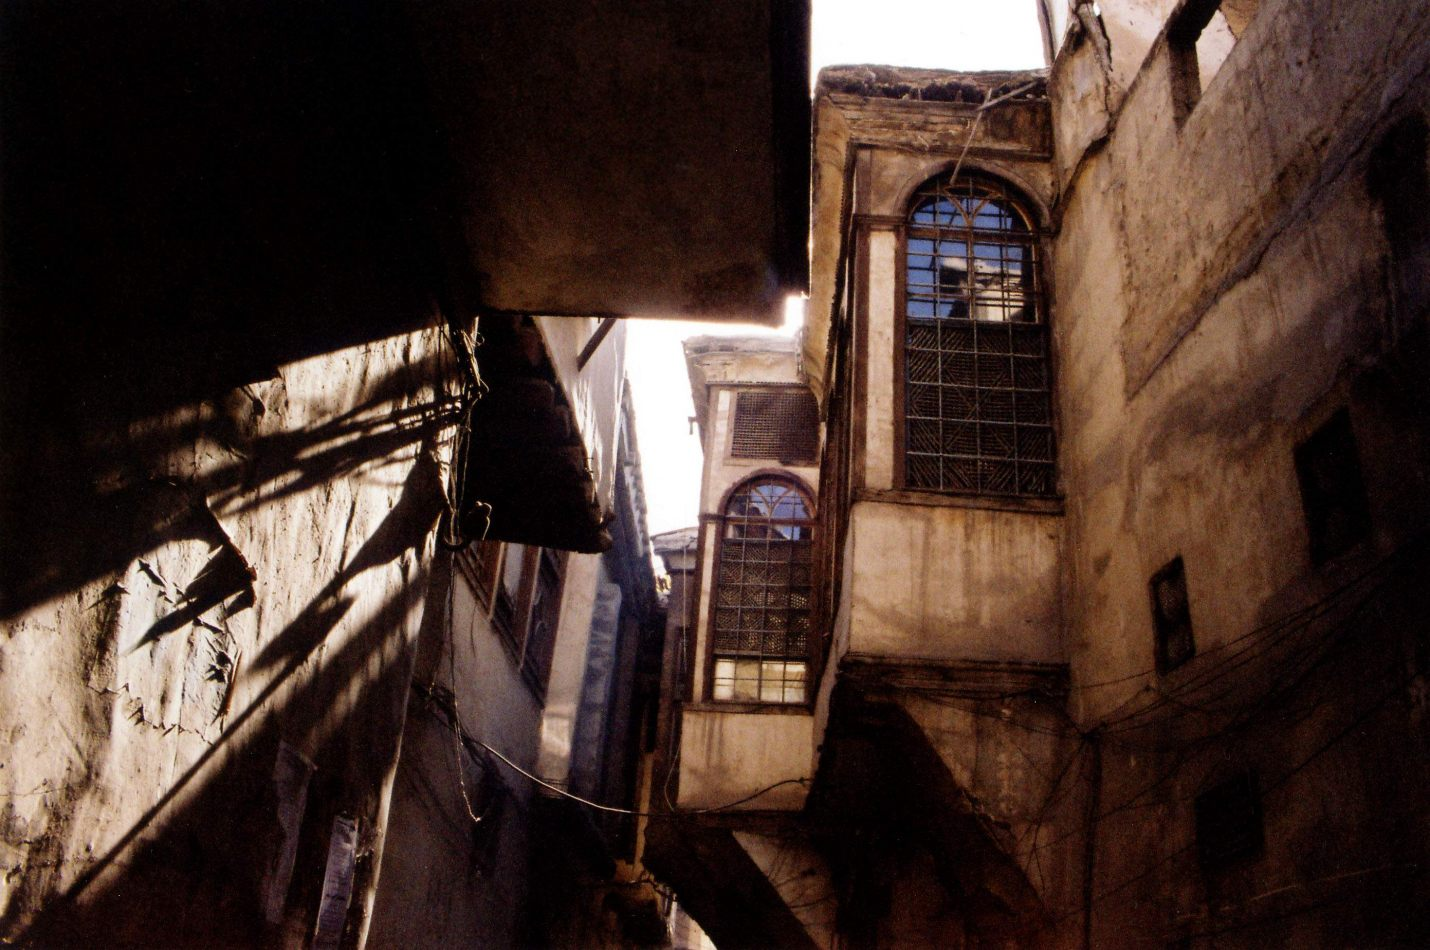 Anthony Ellis Photography: Shadows and Steps - The Road to Damascus